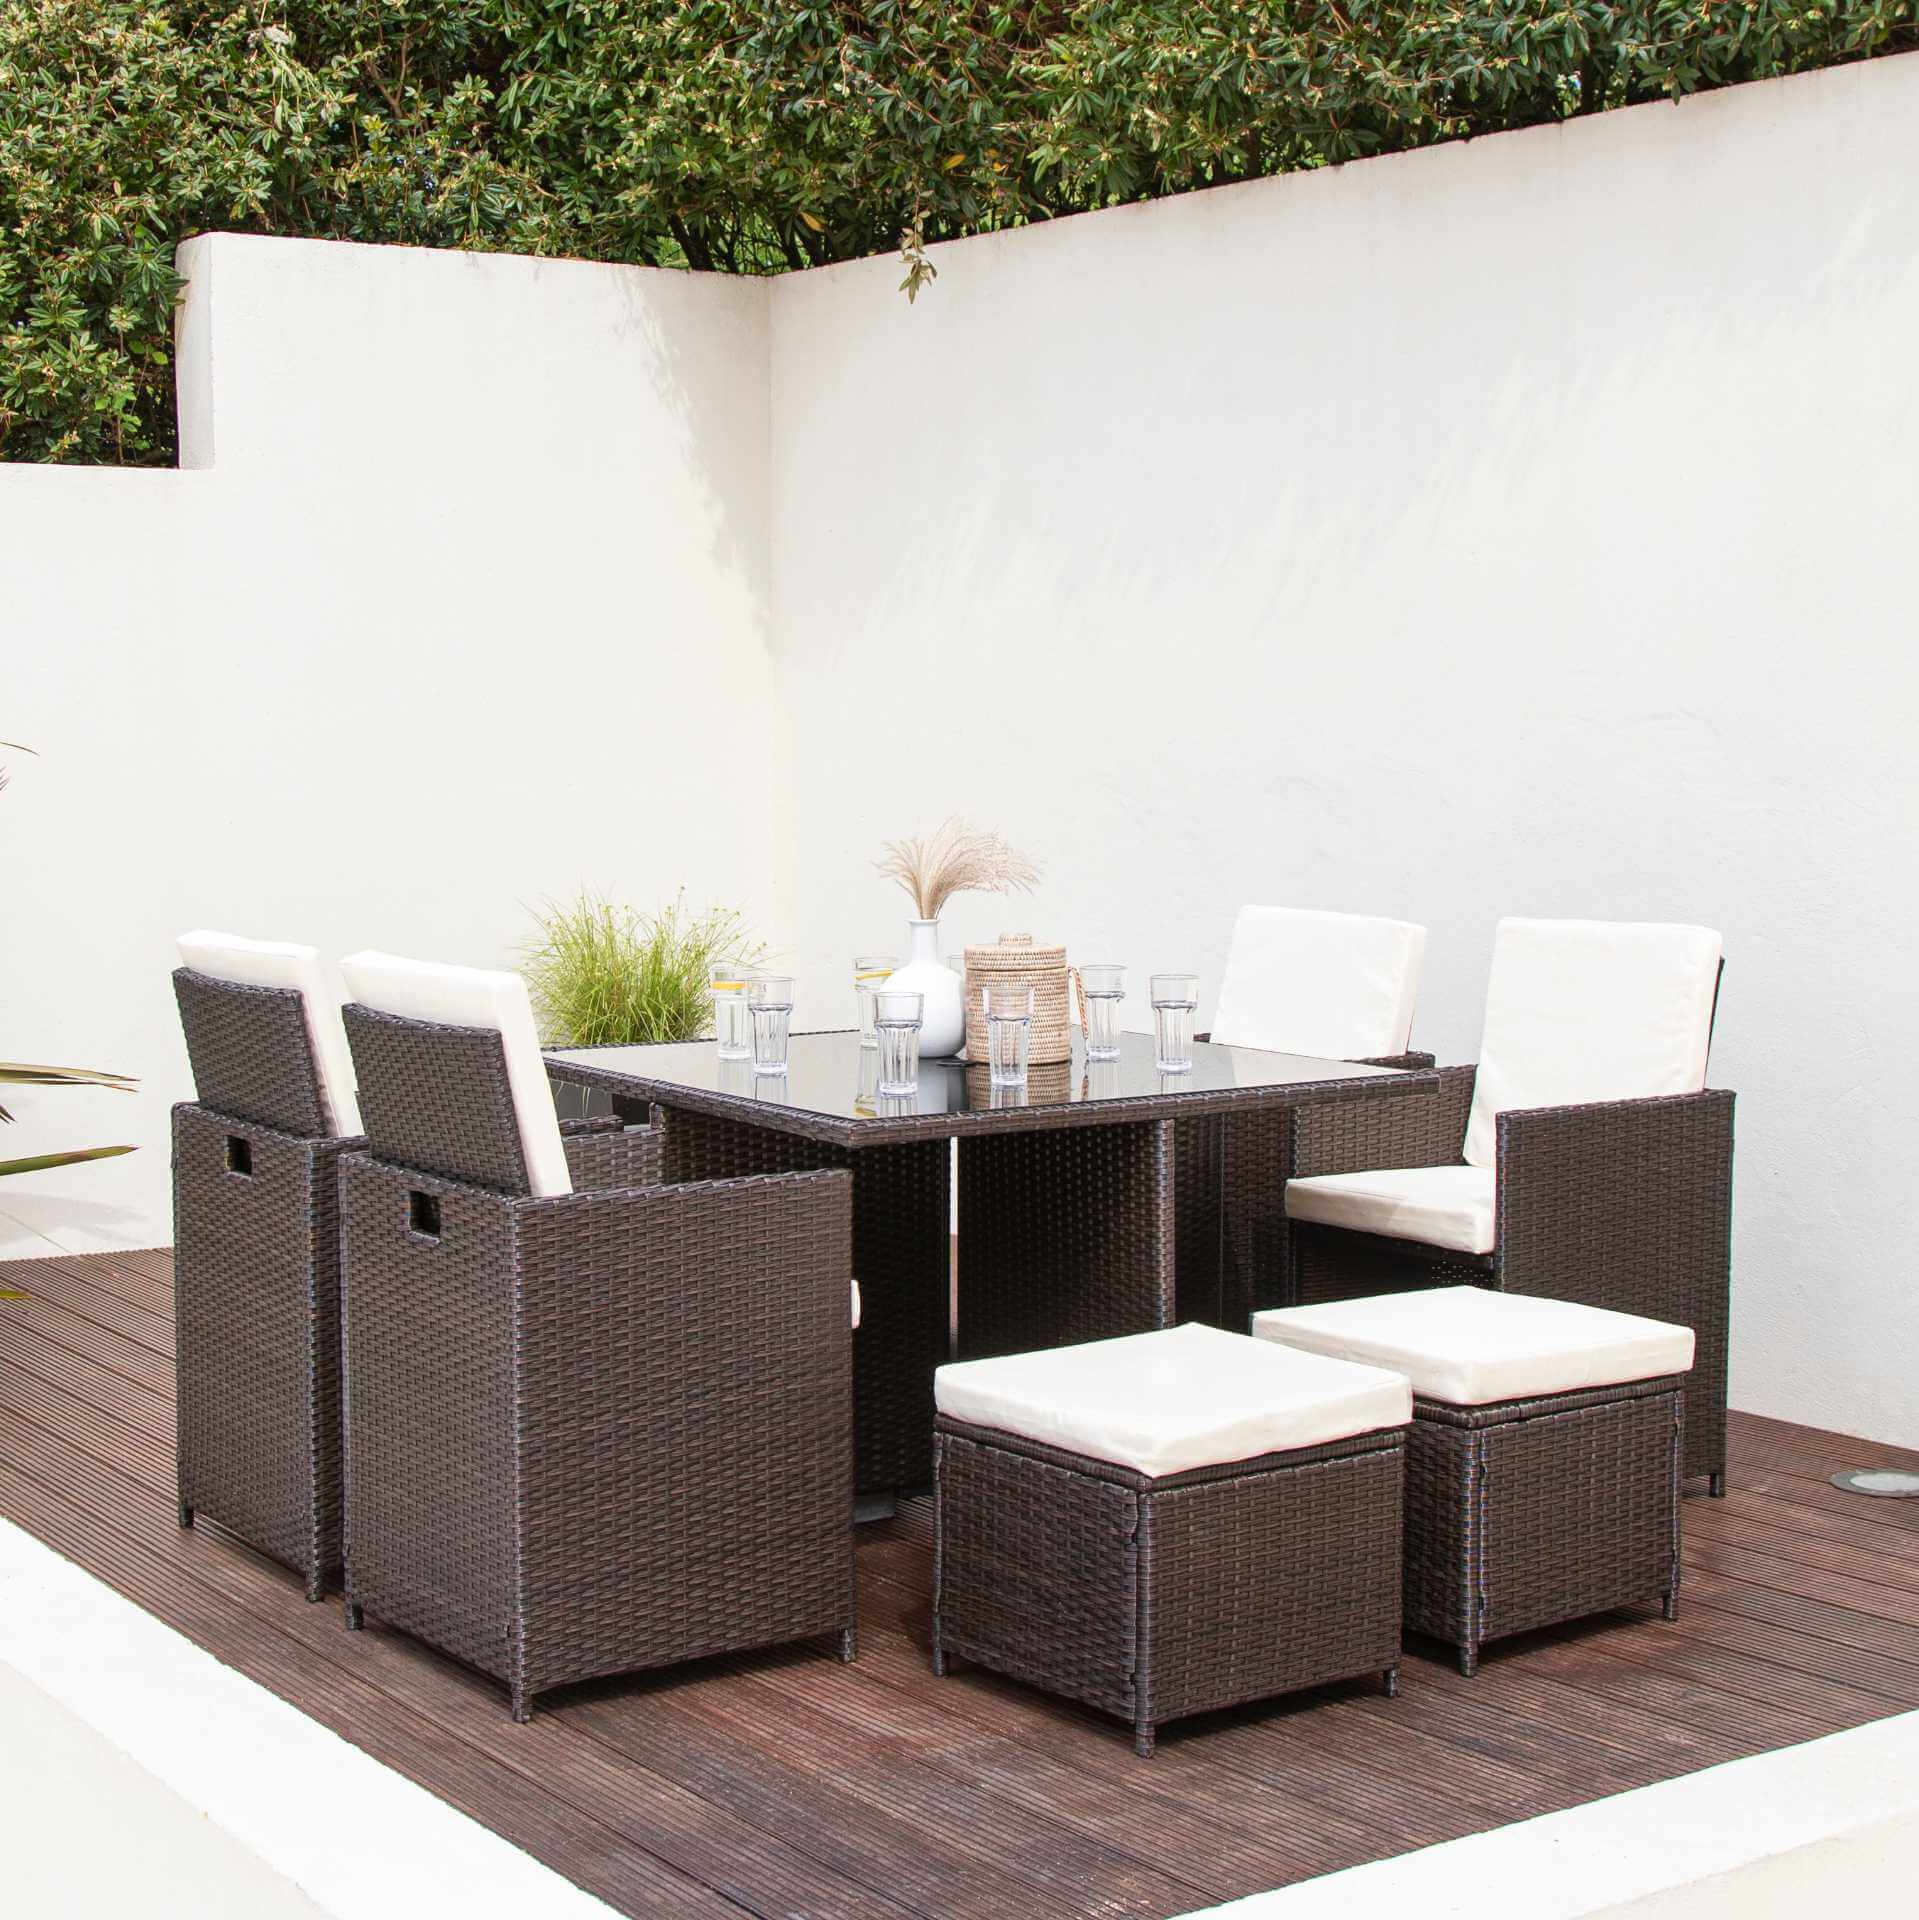 8 Seater Rattan Cube Outdoor Dining Set - Mixed Brown Weave